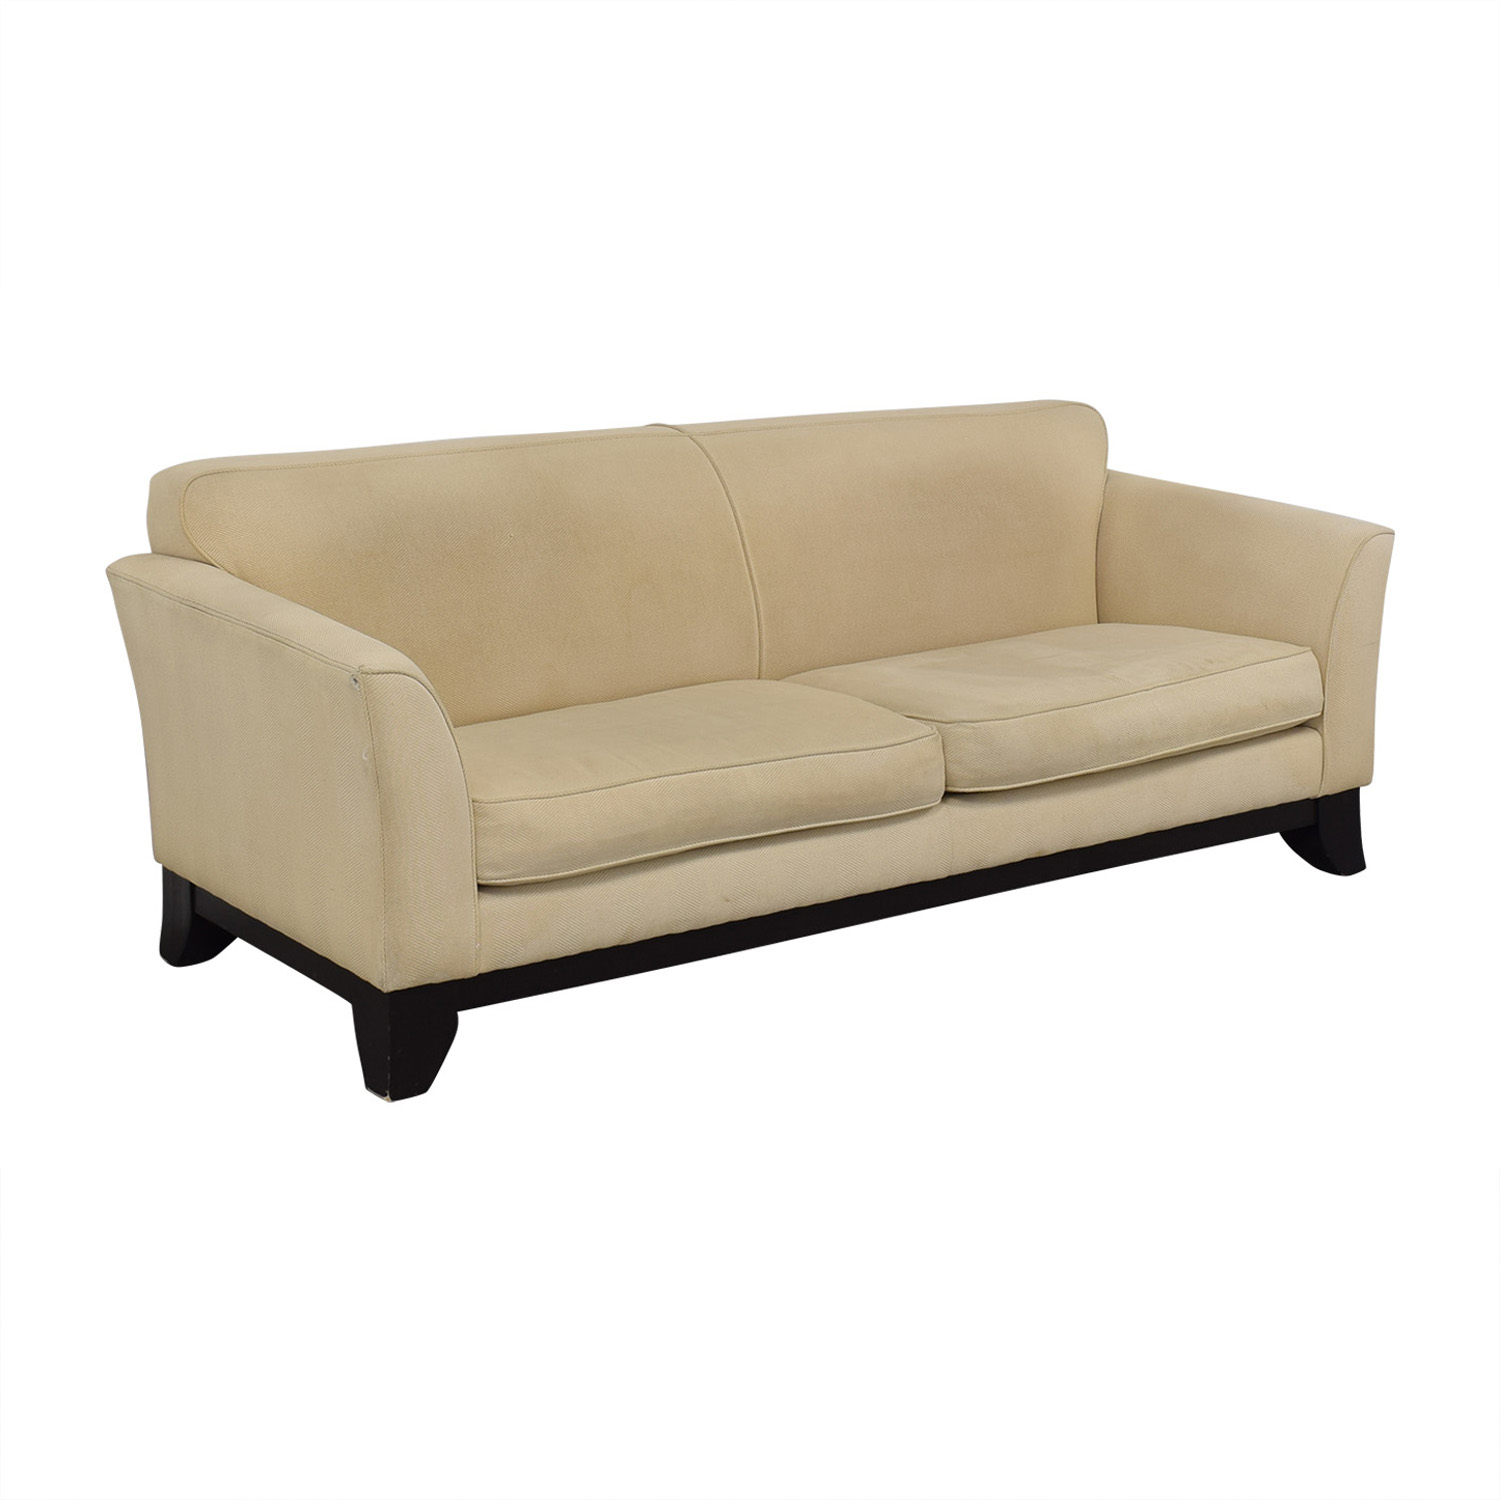 85 Off Pottery Barn Greenwich Upholstered Sofa Sofas